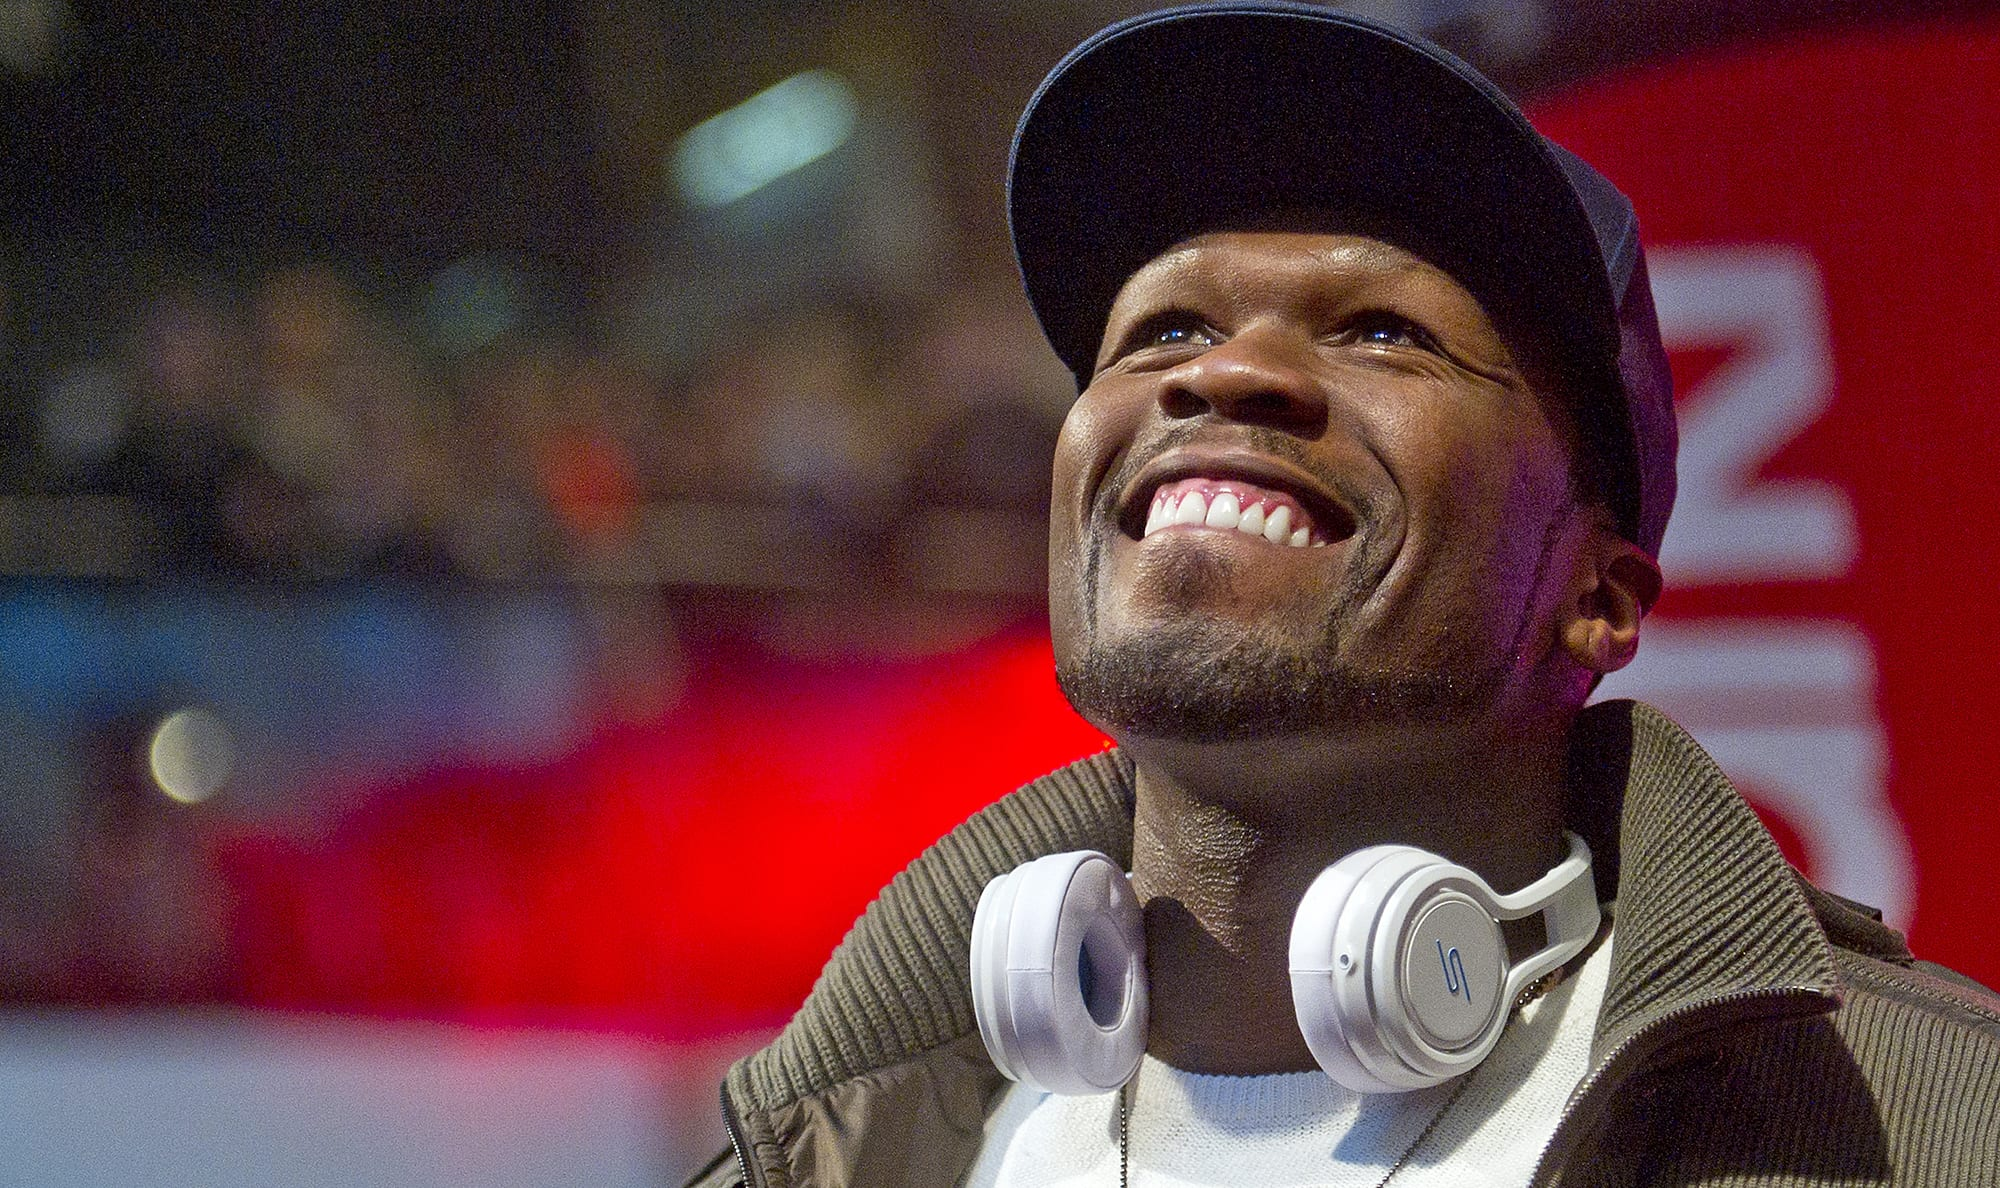 """Rapper Curtis """"50 Cent"""" Jackson presents his SMS headphones in Berlin."""